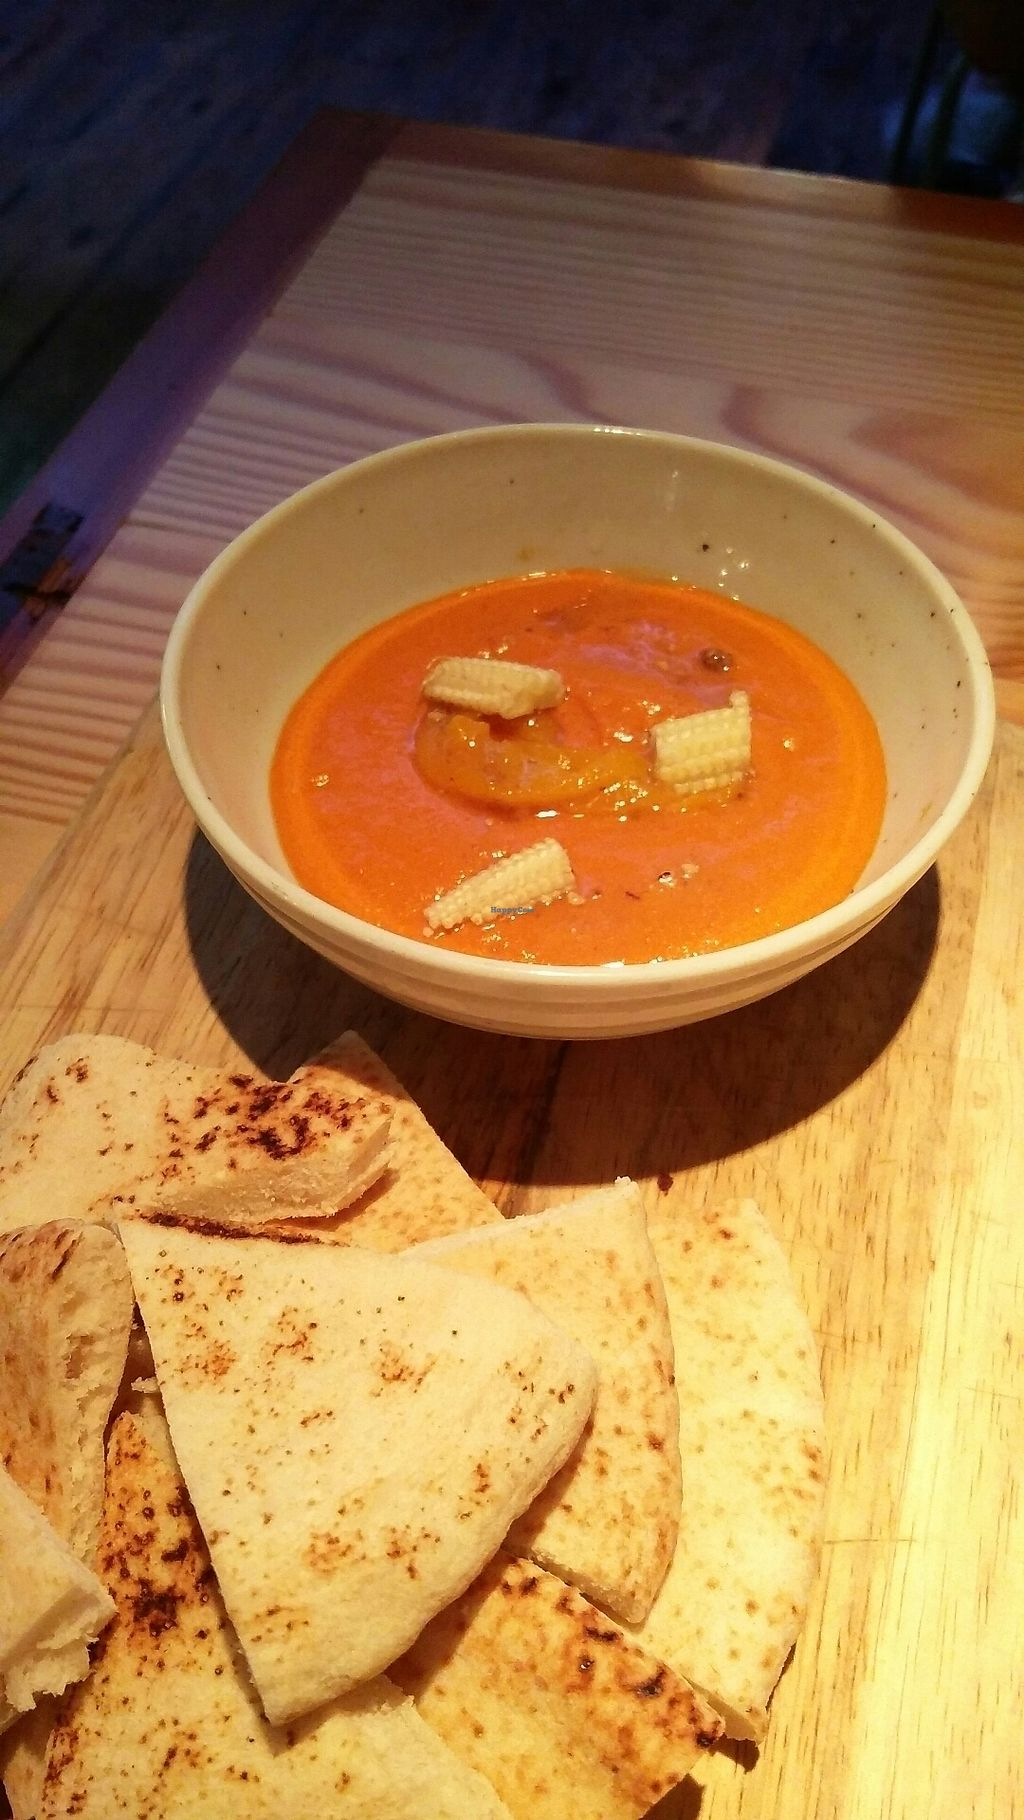 "Photo of Rasoterra Bistrot Vegetaria  by <a href=""/members/profile/Harp"">Harp</a> <br/>Tofu and red pepper dip <br/> July 6, 2017  - <a href='/contact/abuse/image/37964/277062'>Report</a>"